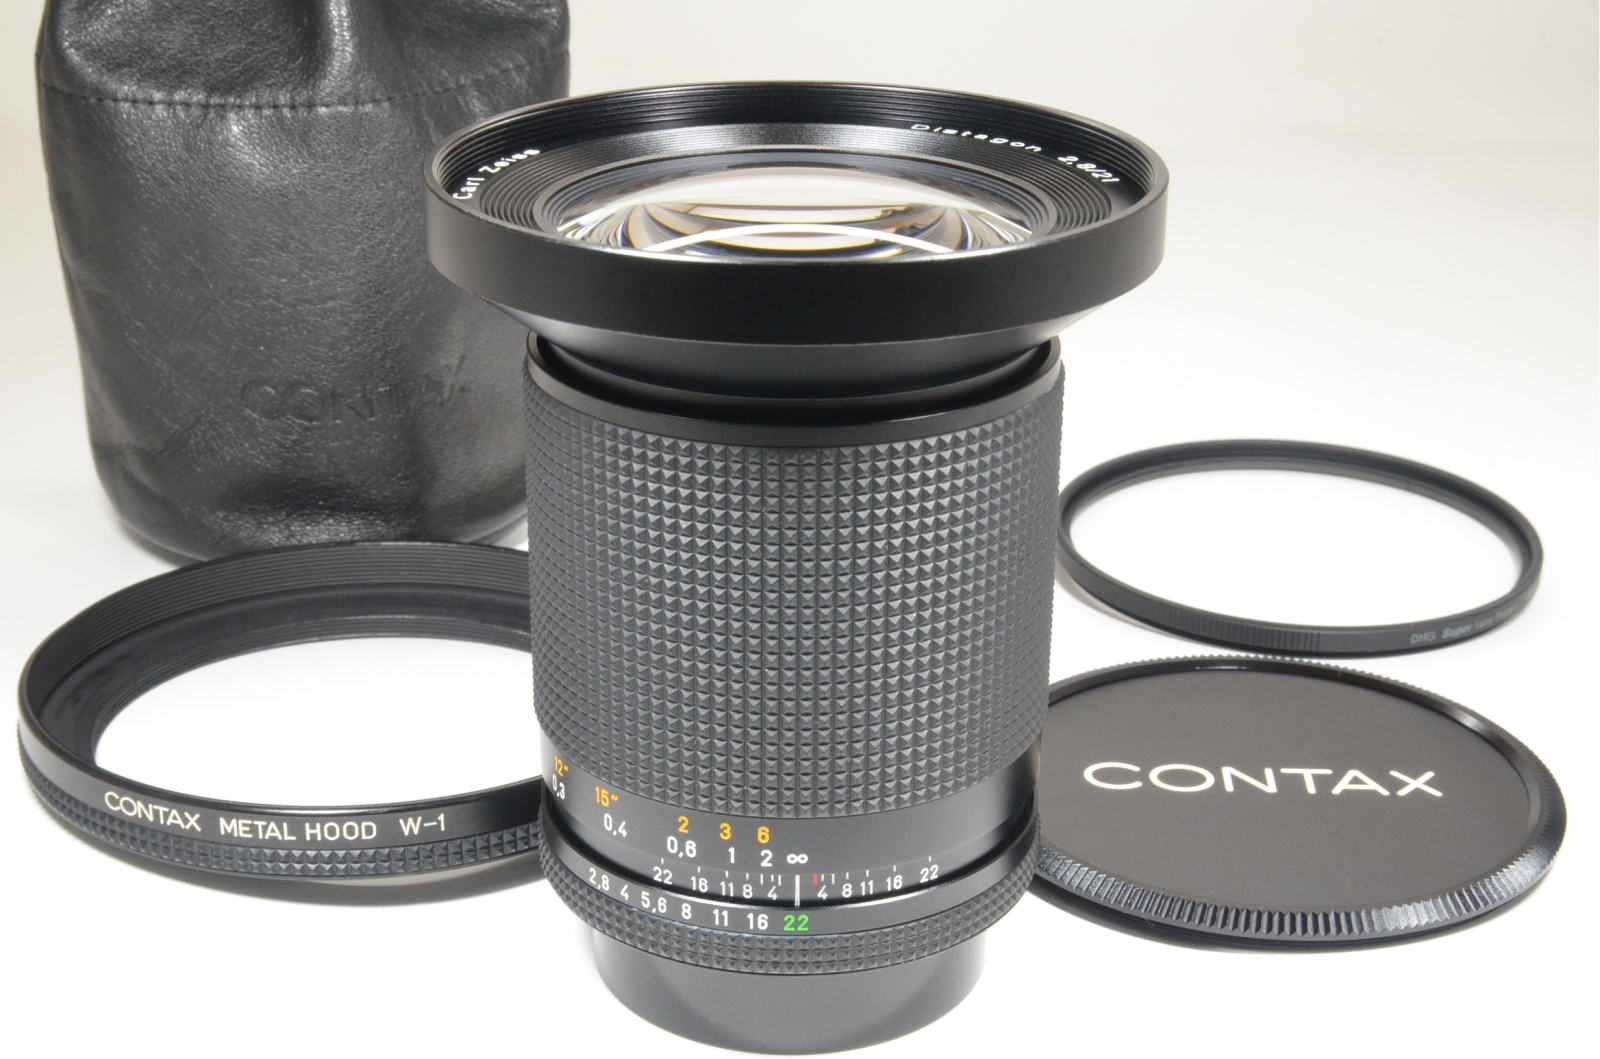 contax carl zeiss distagon t* 21mm f2.8 mmj with metal hood w-1